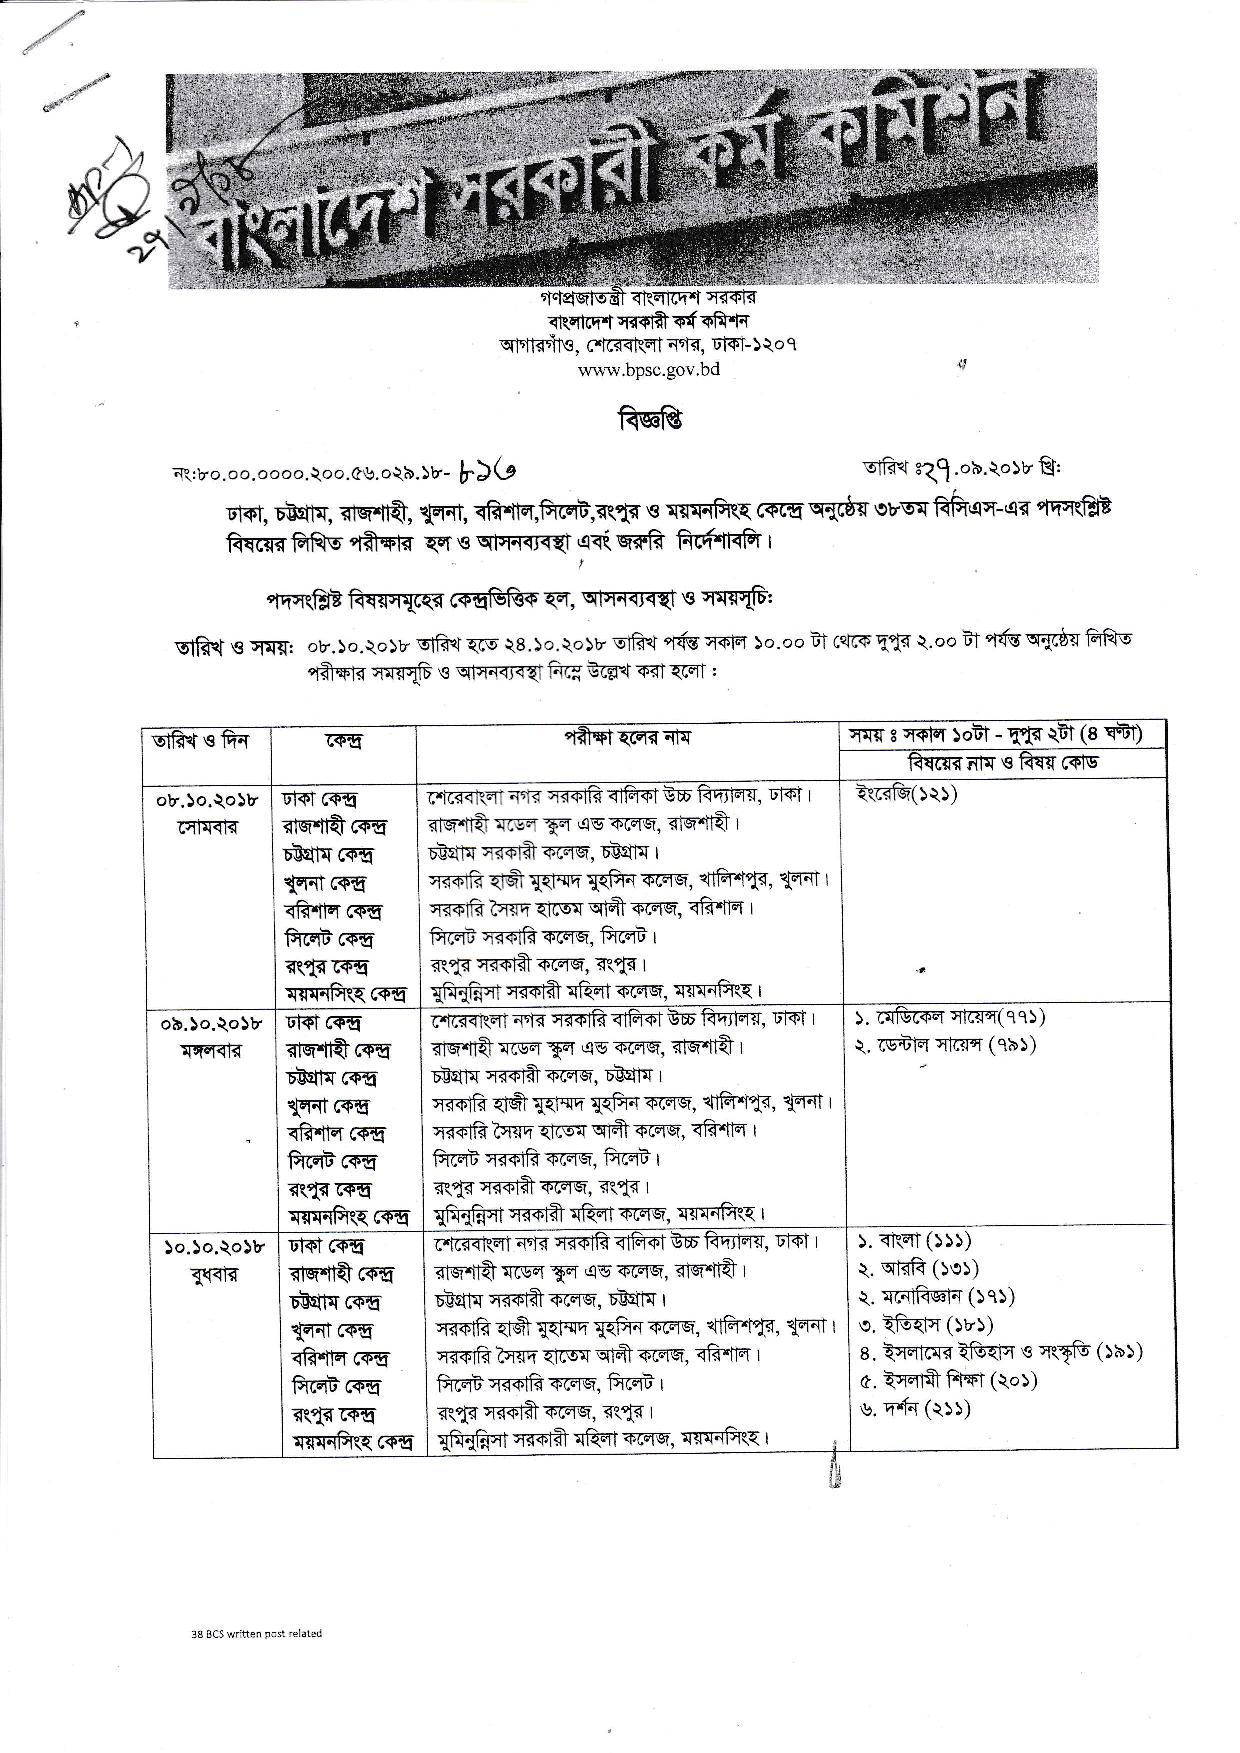 38th BCS Subjective Written Exam Date and Seat Plan Results Circular 2018 1